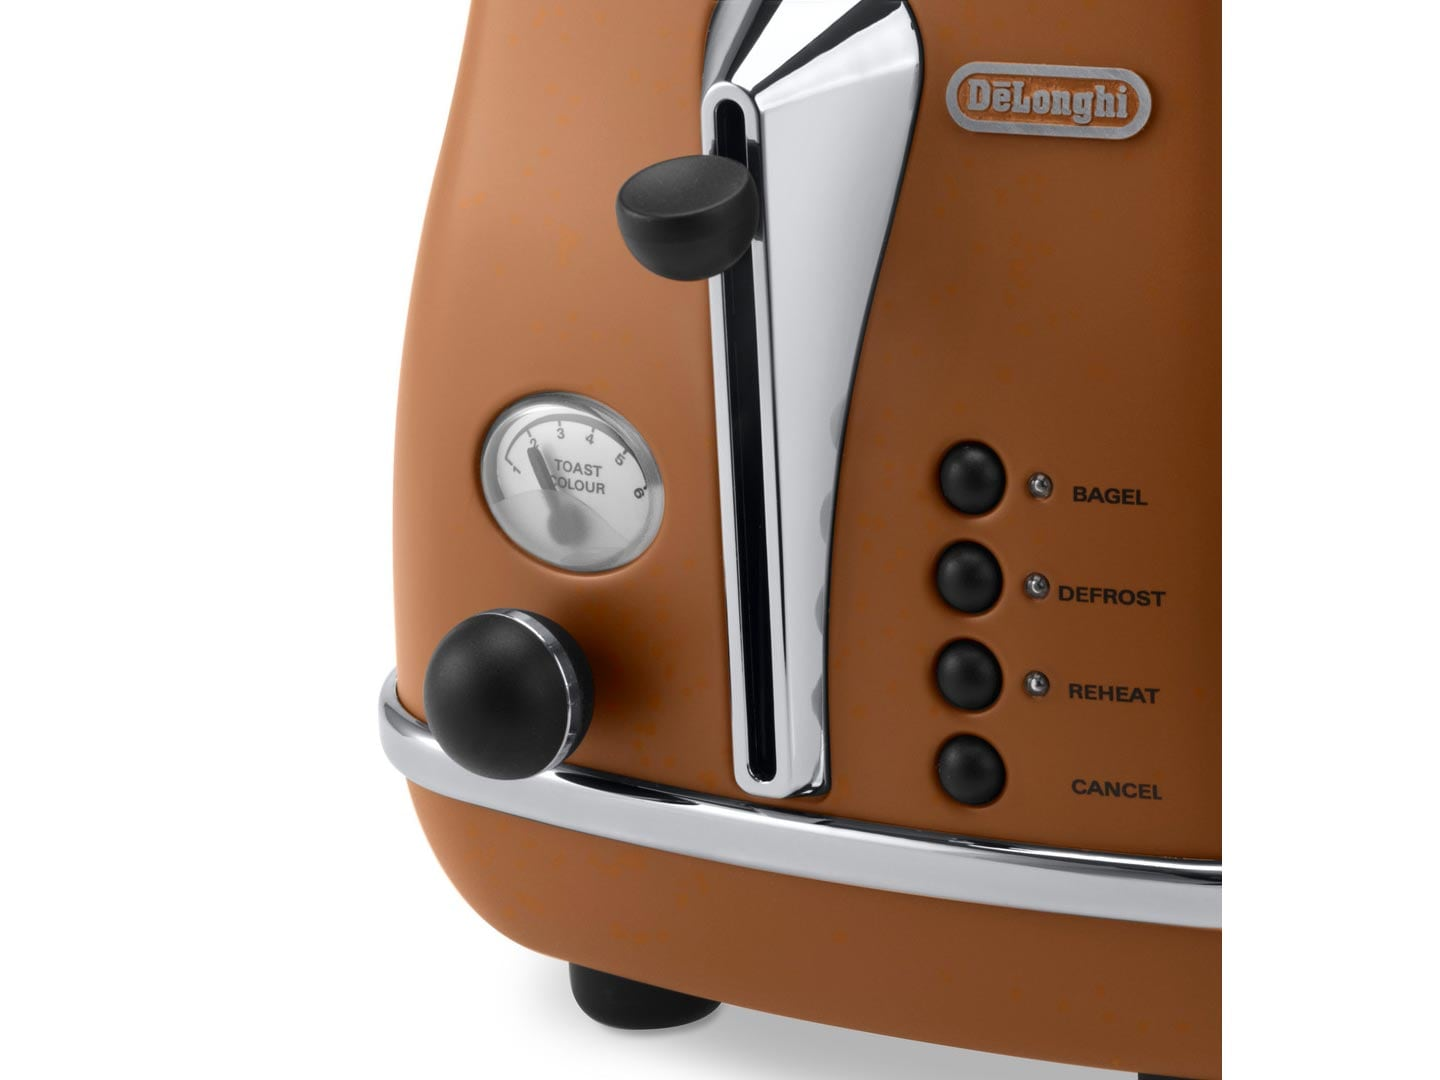 DeLonghi Icona Vintage Brown 2 Slice Toaster CTOV2003BW